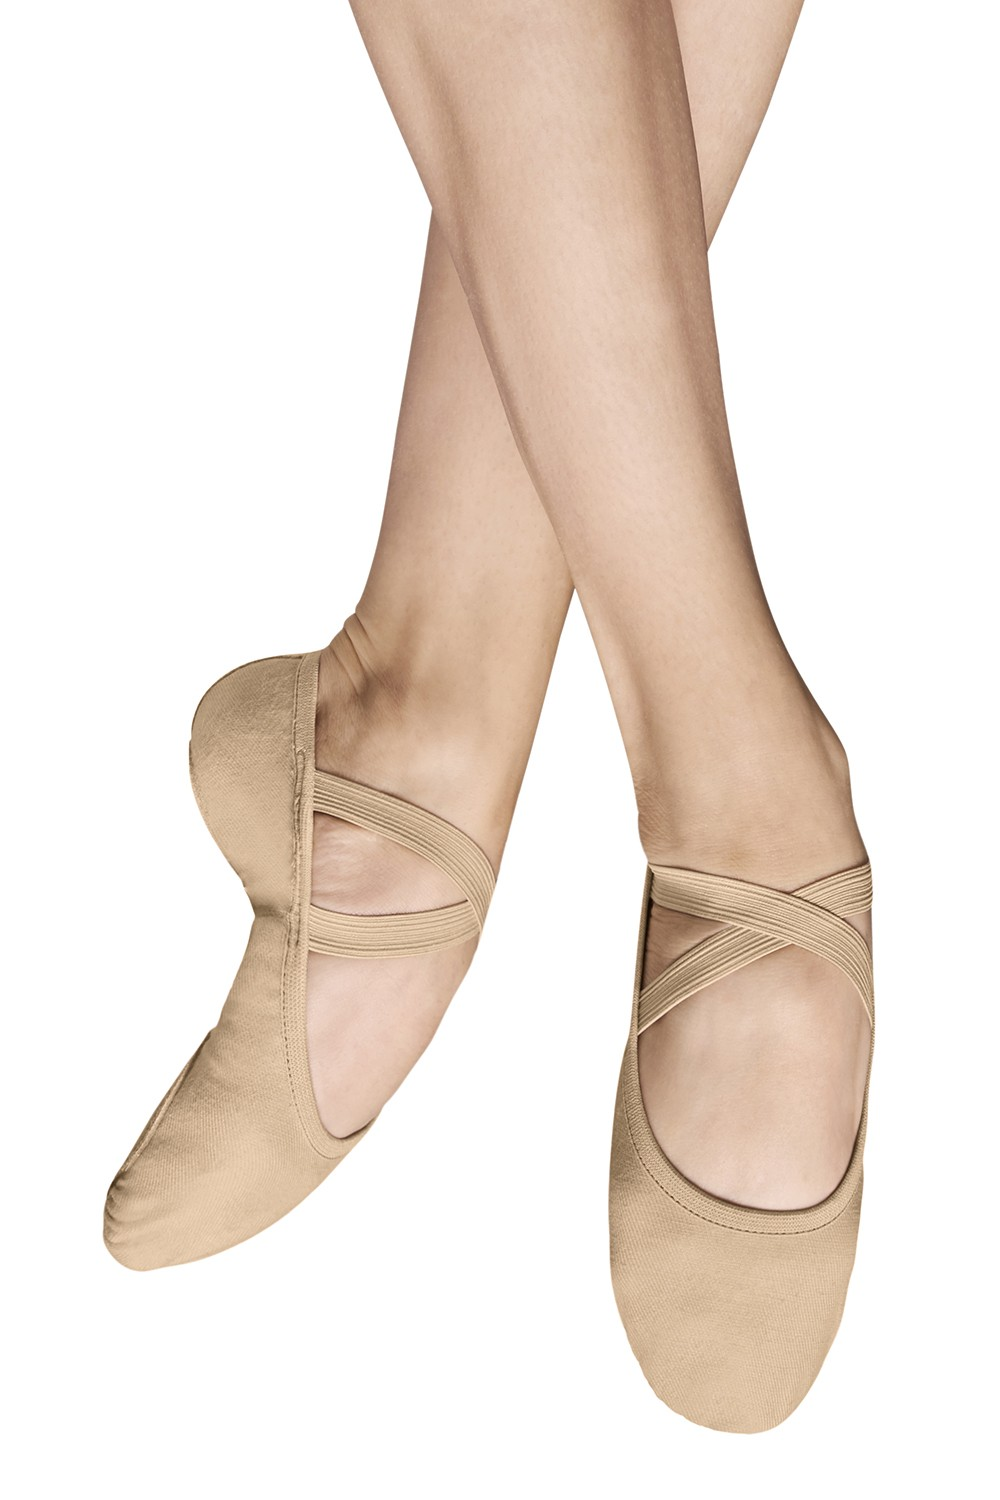 Performa - Homme Men's Ballet Shoes